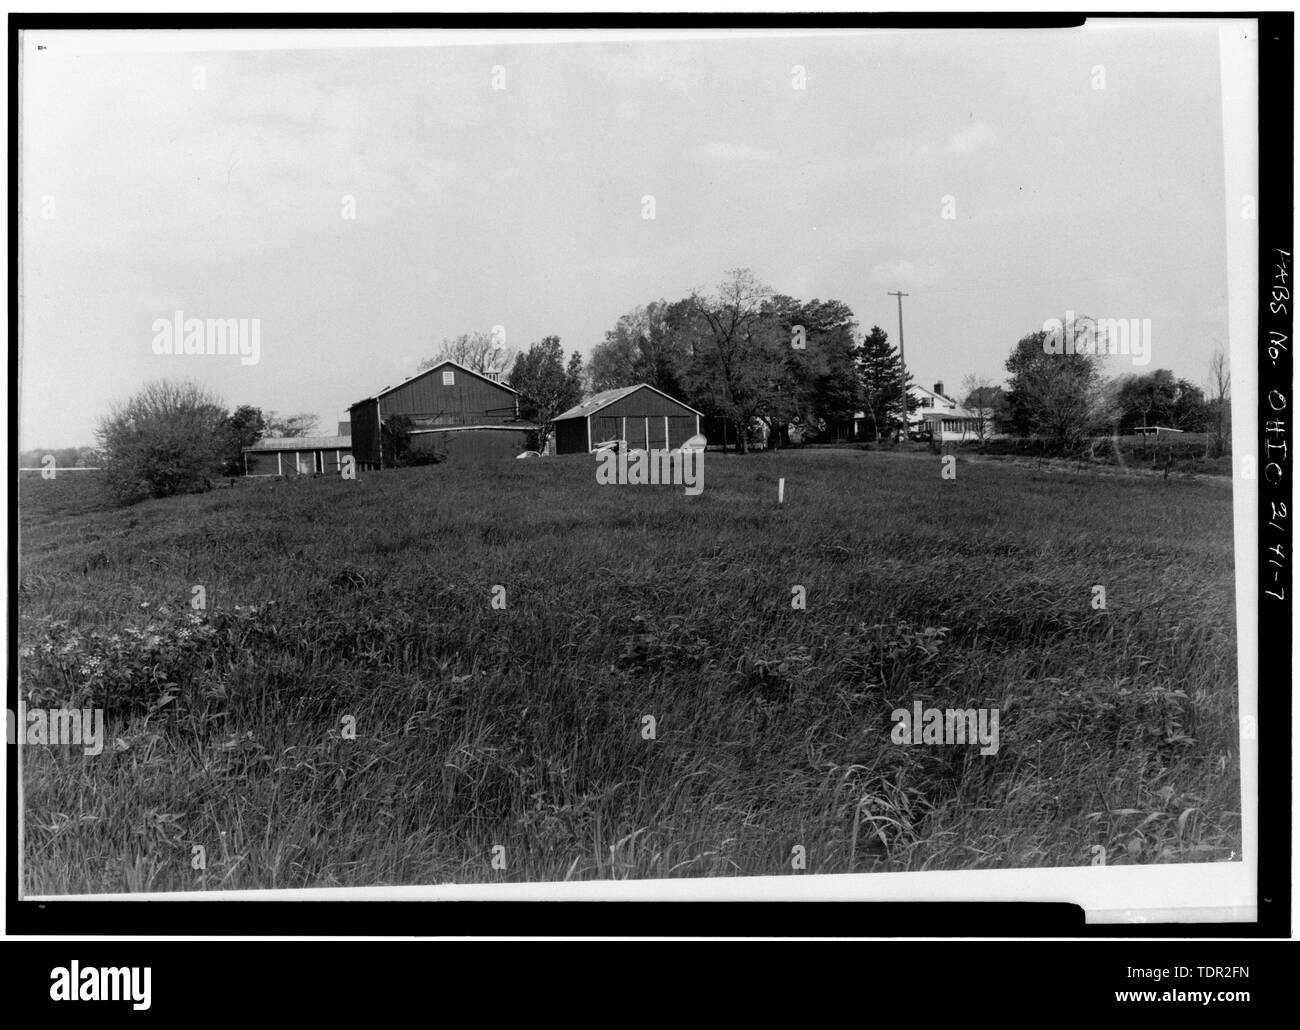 Photograph of photograph, circa 1971. Original print in Field Records. LOOKING WEST TOWARDS BARNS. - Abbott-Page House, Mason Road, State Route 13 vicinity, Milan, Erie County, OH - Stock Image